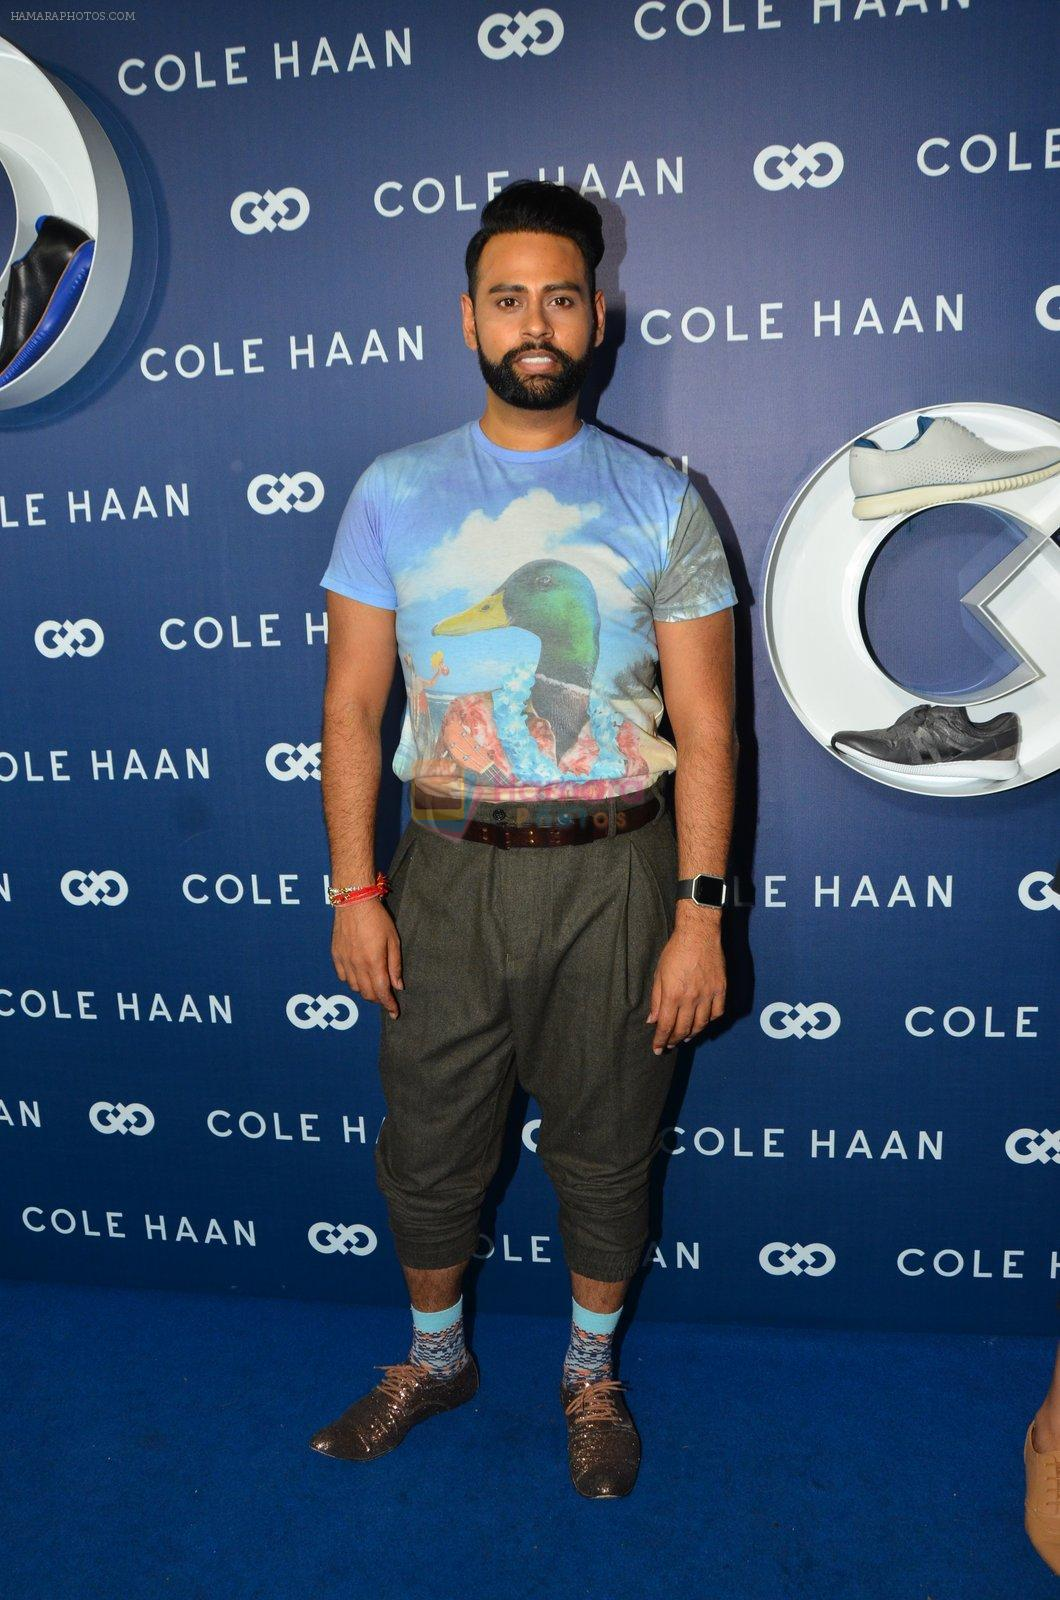 Andy at the launch of Cole Haan in India on 26th Aug 2016